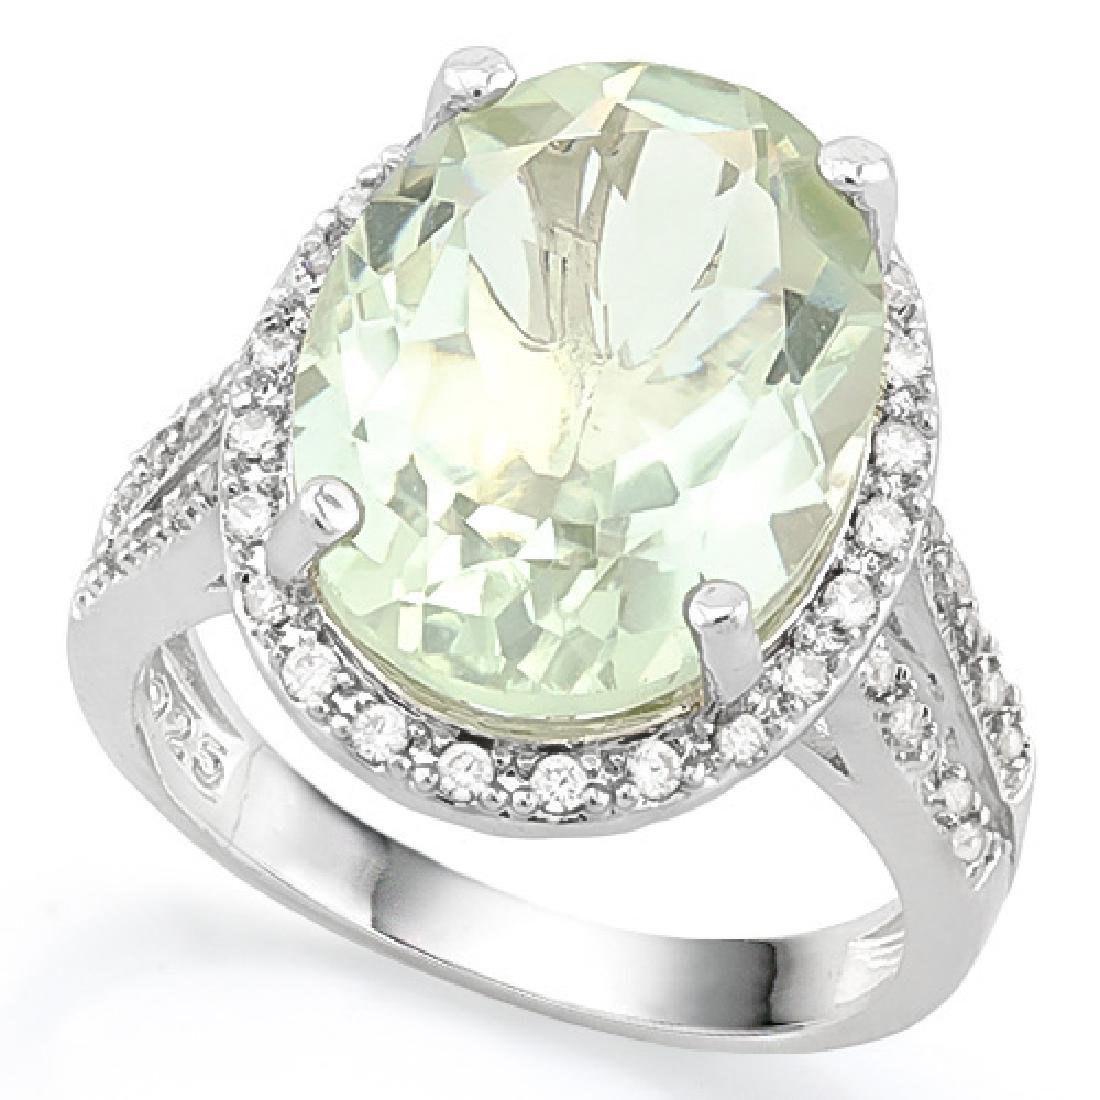 HUGE 8CT GREEN AMETHYST/DIAMOND OVAL FACETED RING